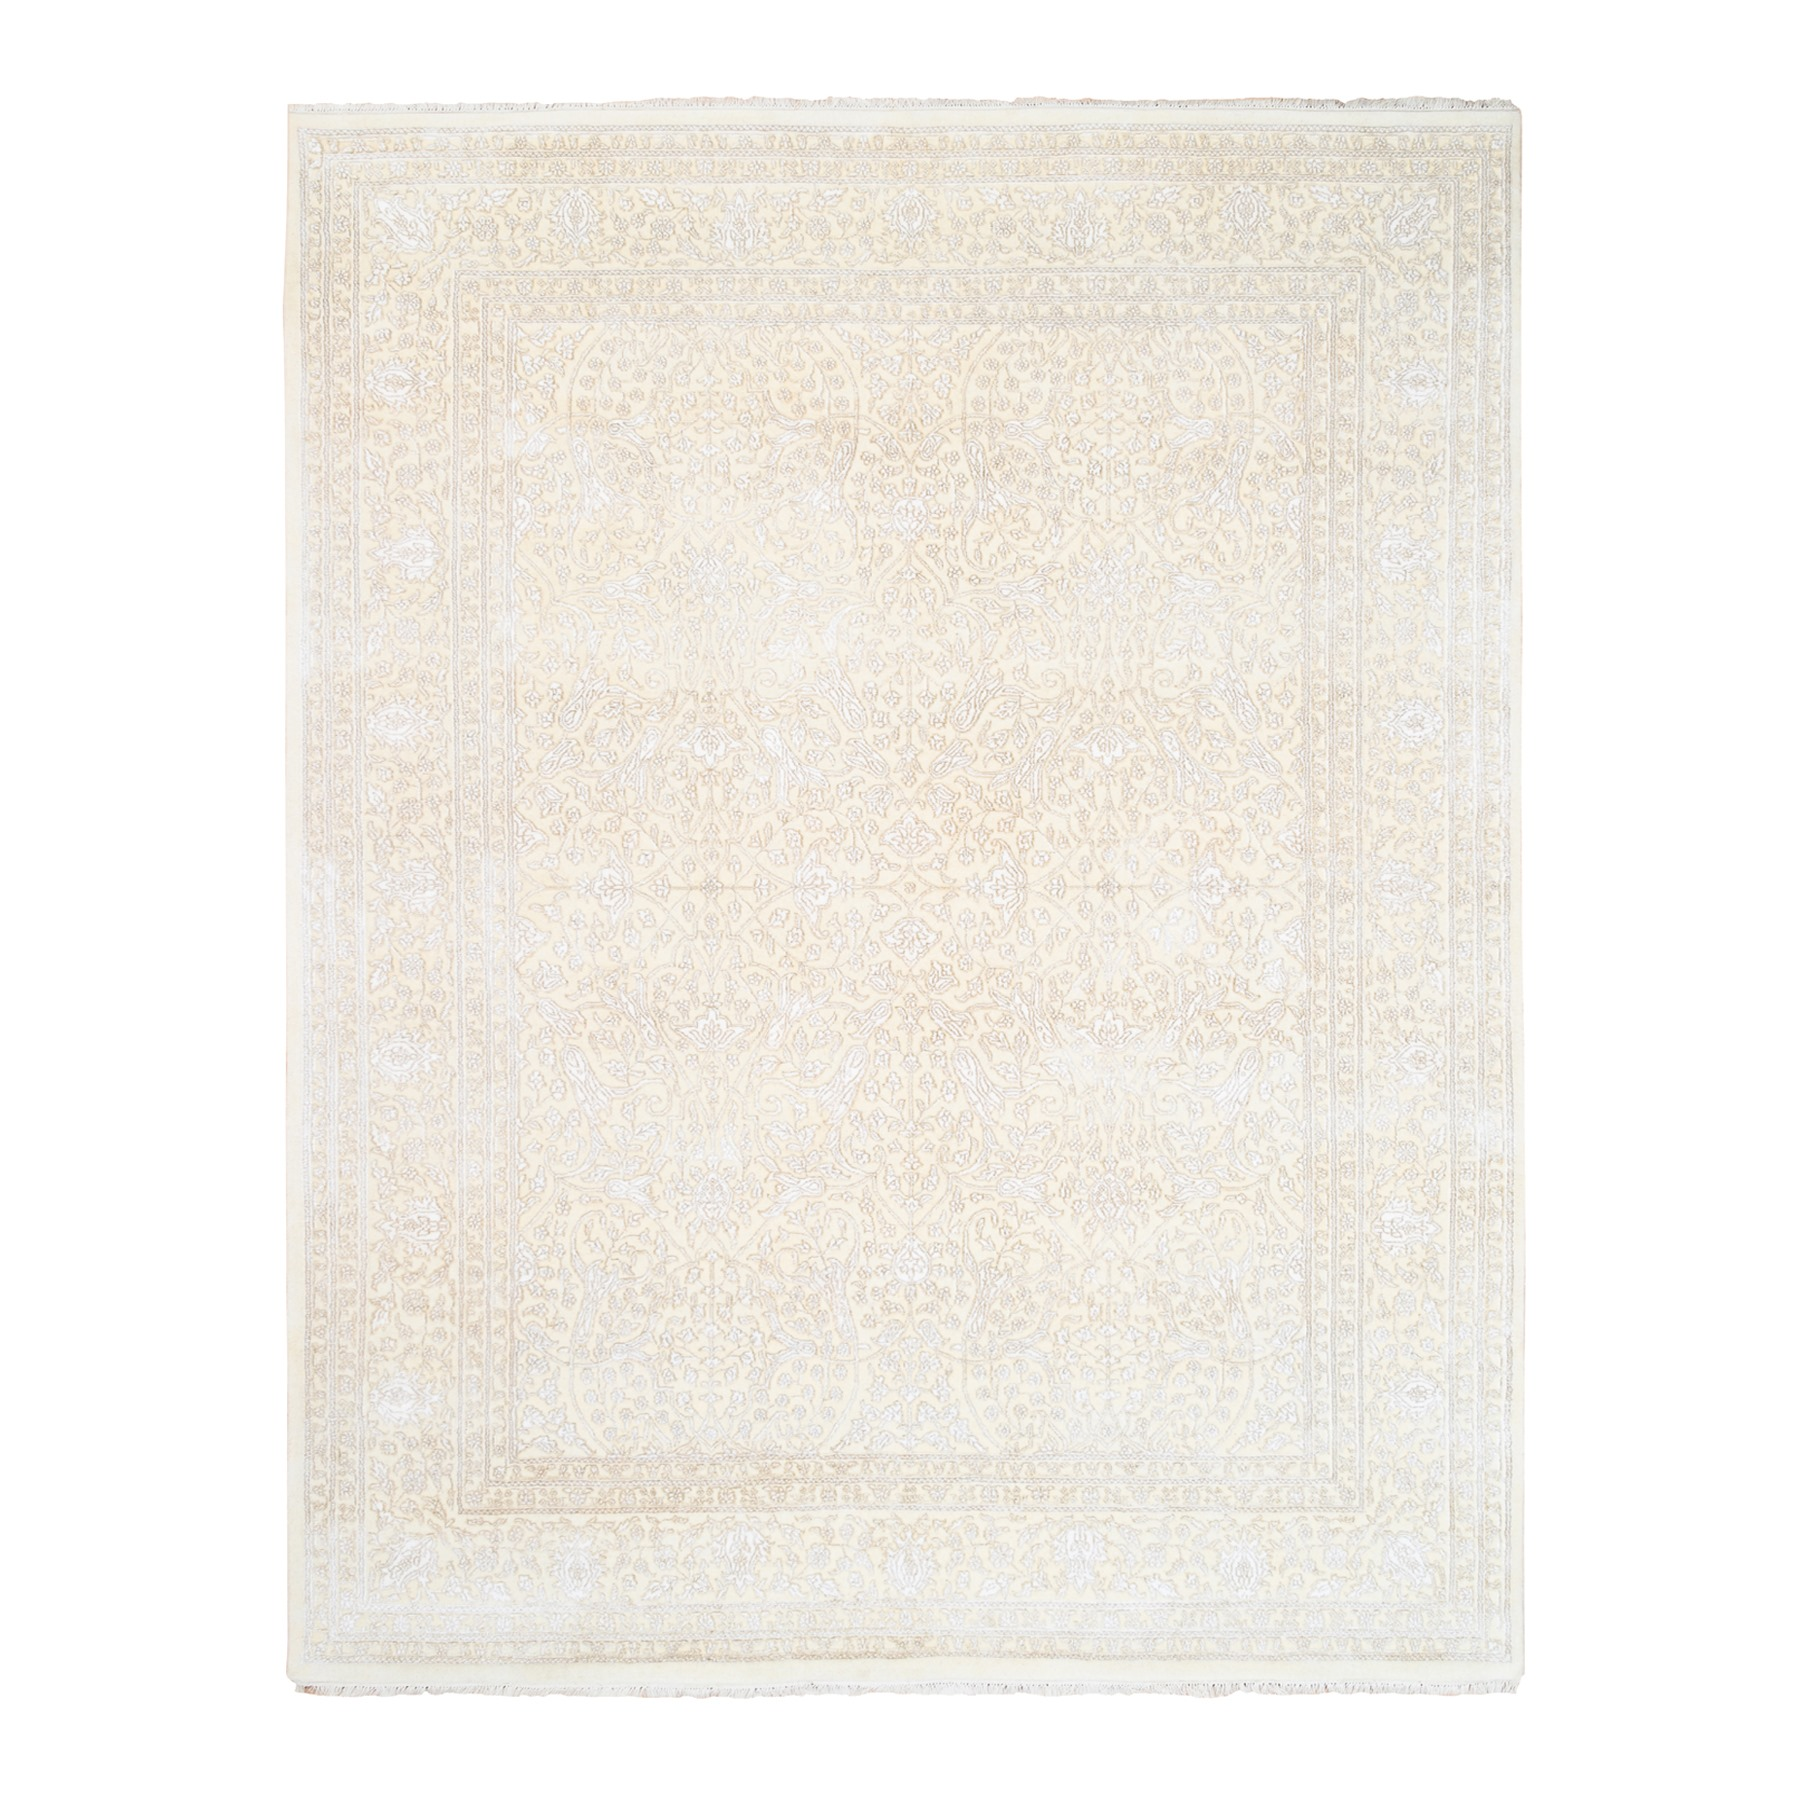 Pirniakan Collection Hand Knotted Ivory Rug No: 1124490